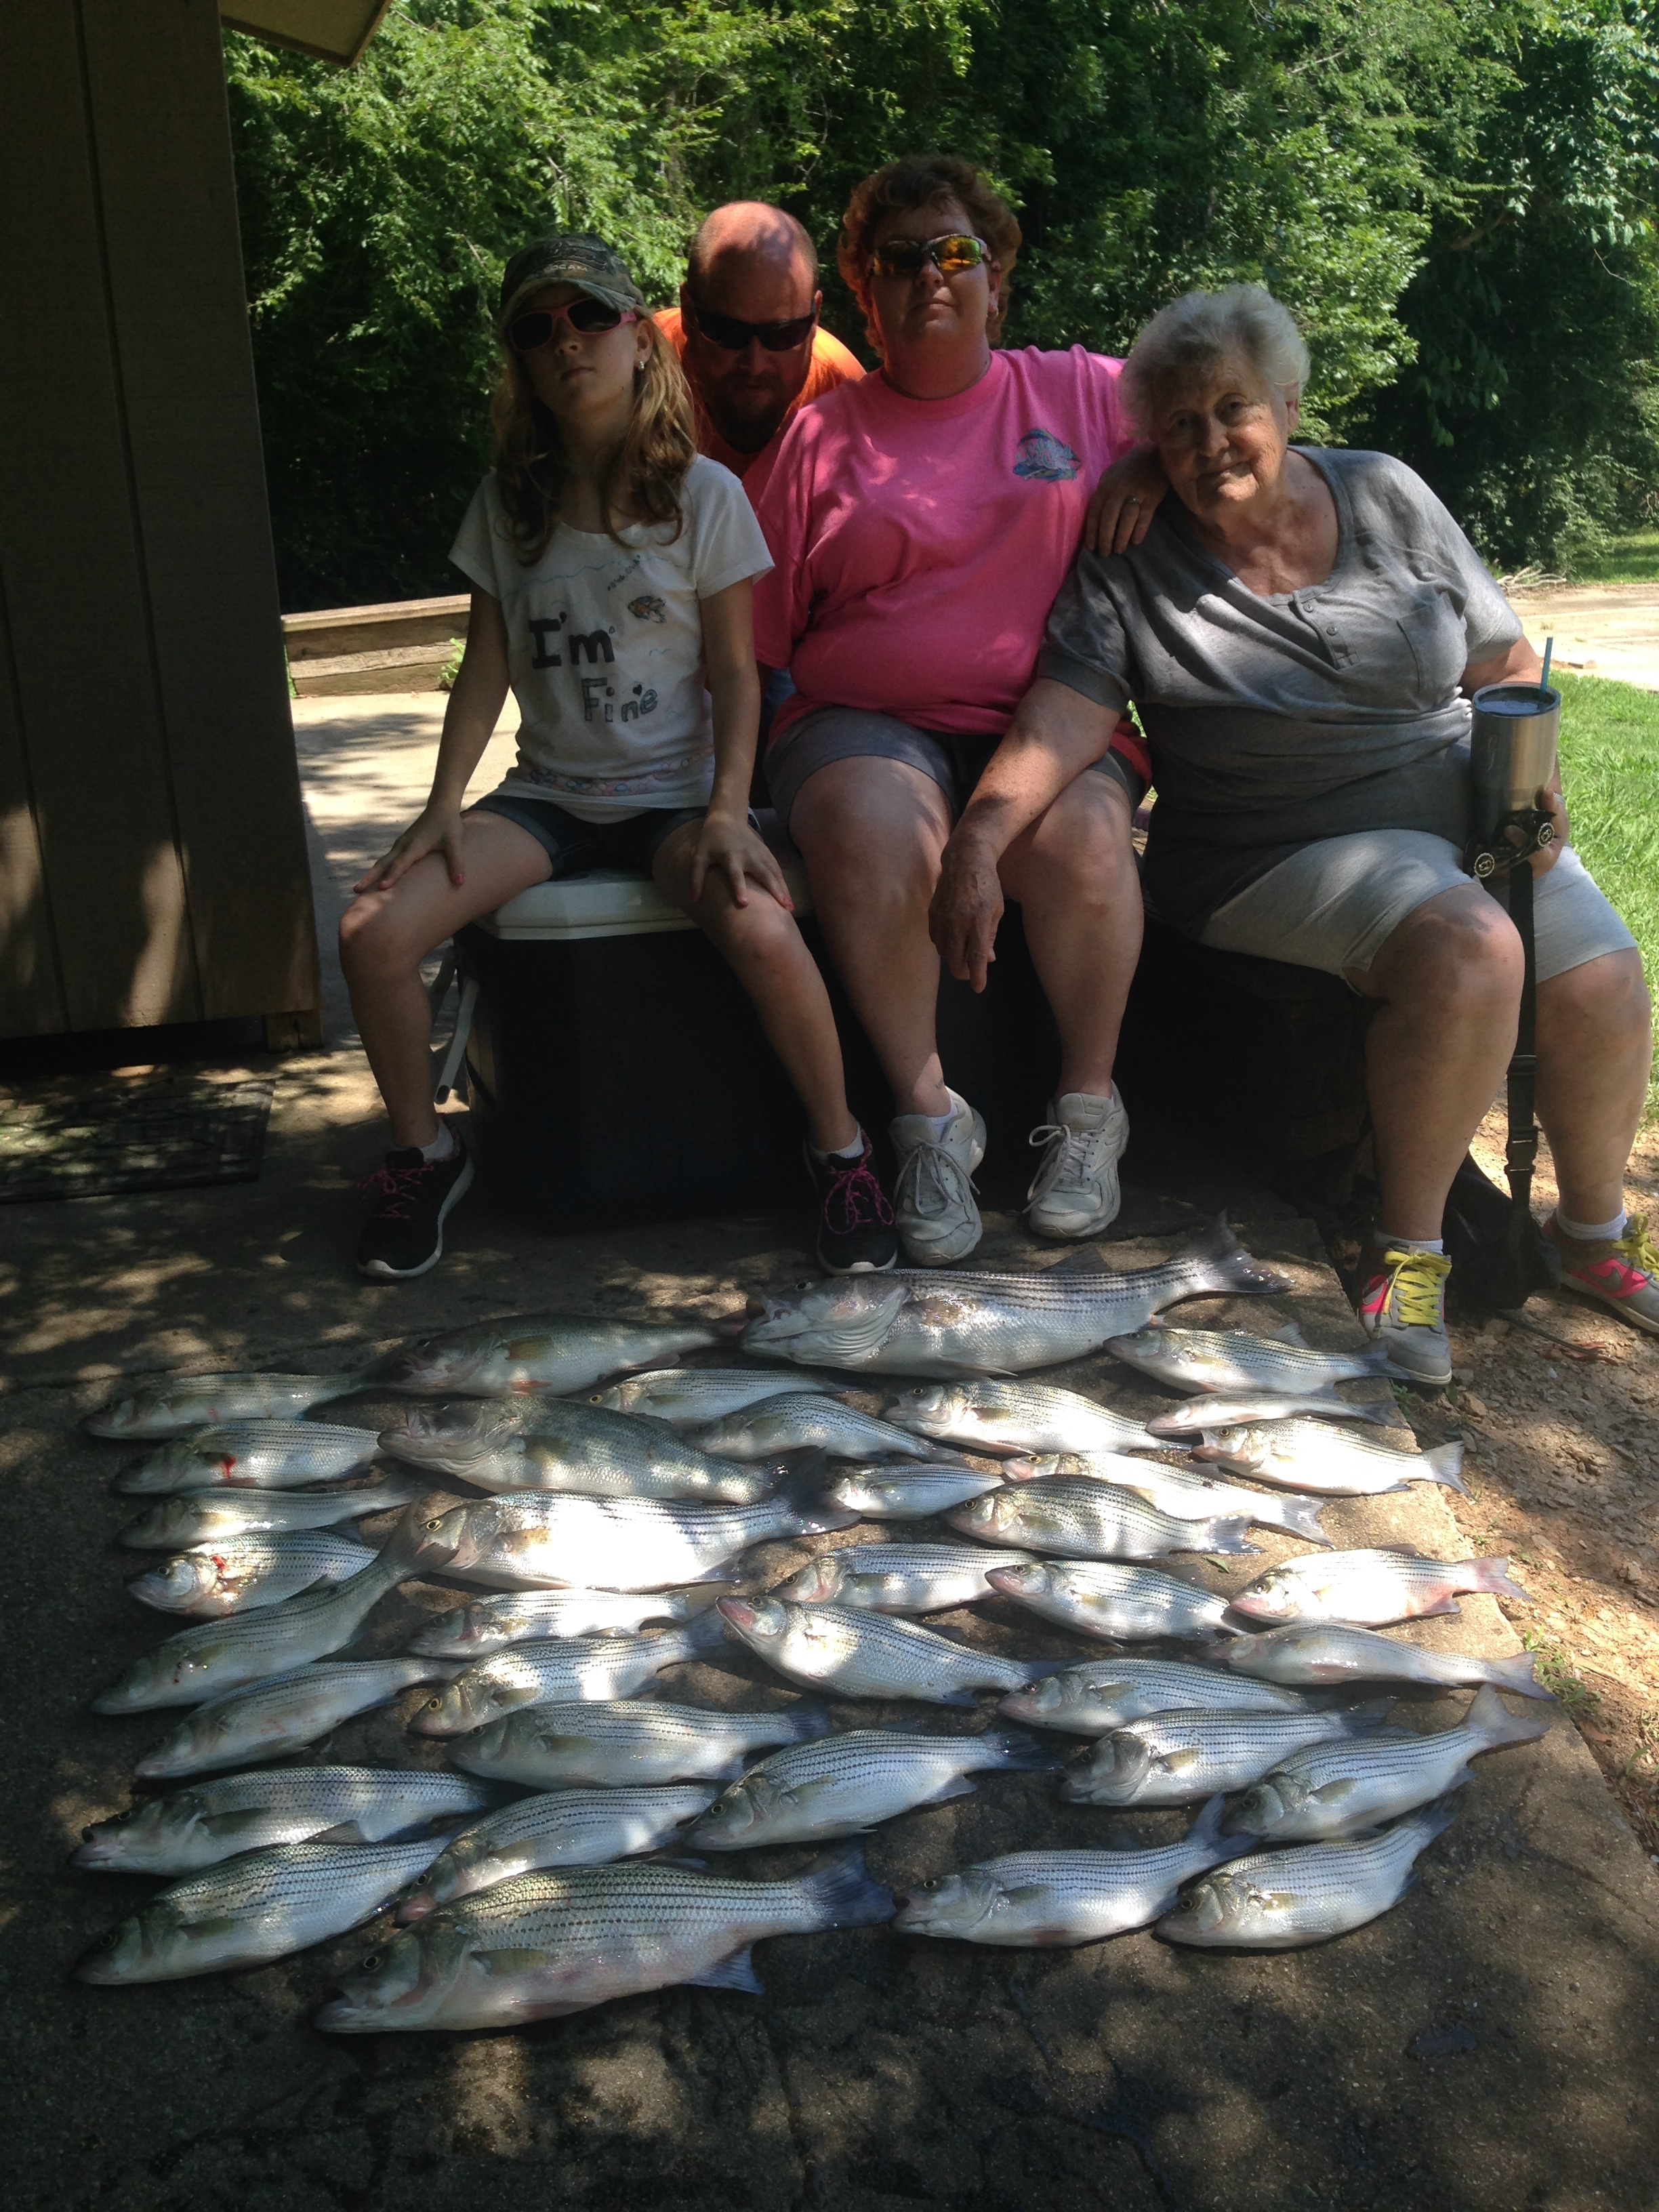 May 29, 2017 Becky, Tiffany, Becky's Mom Granny and Brad Murphy with there 40 fish.